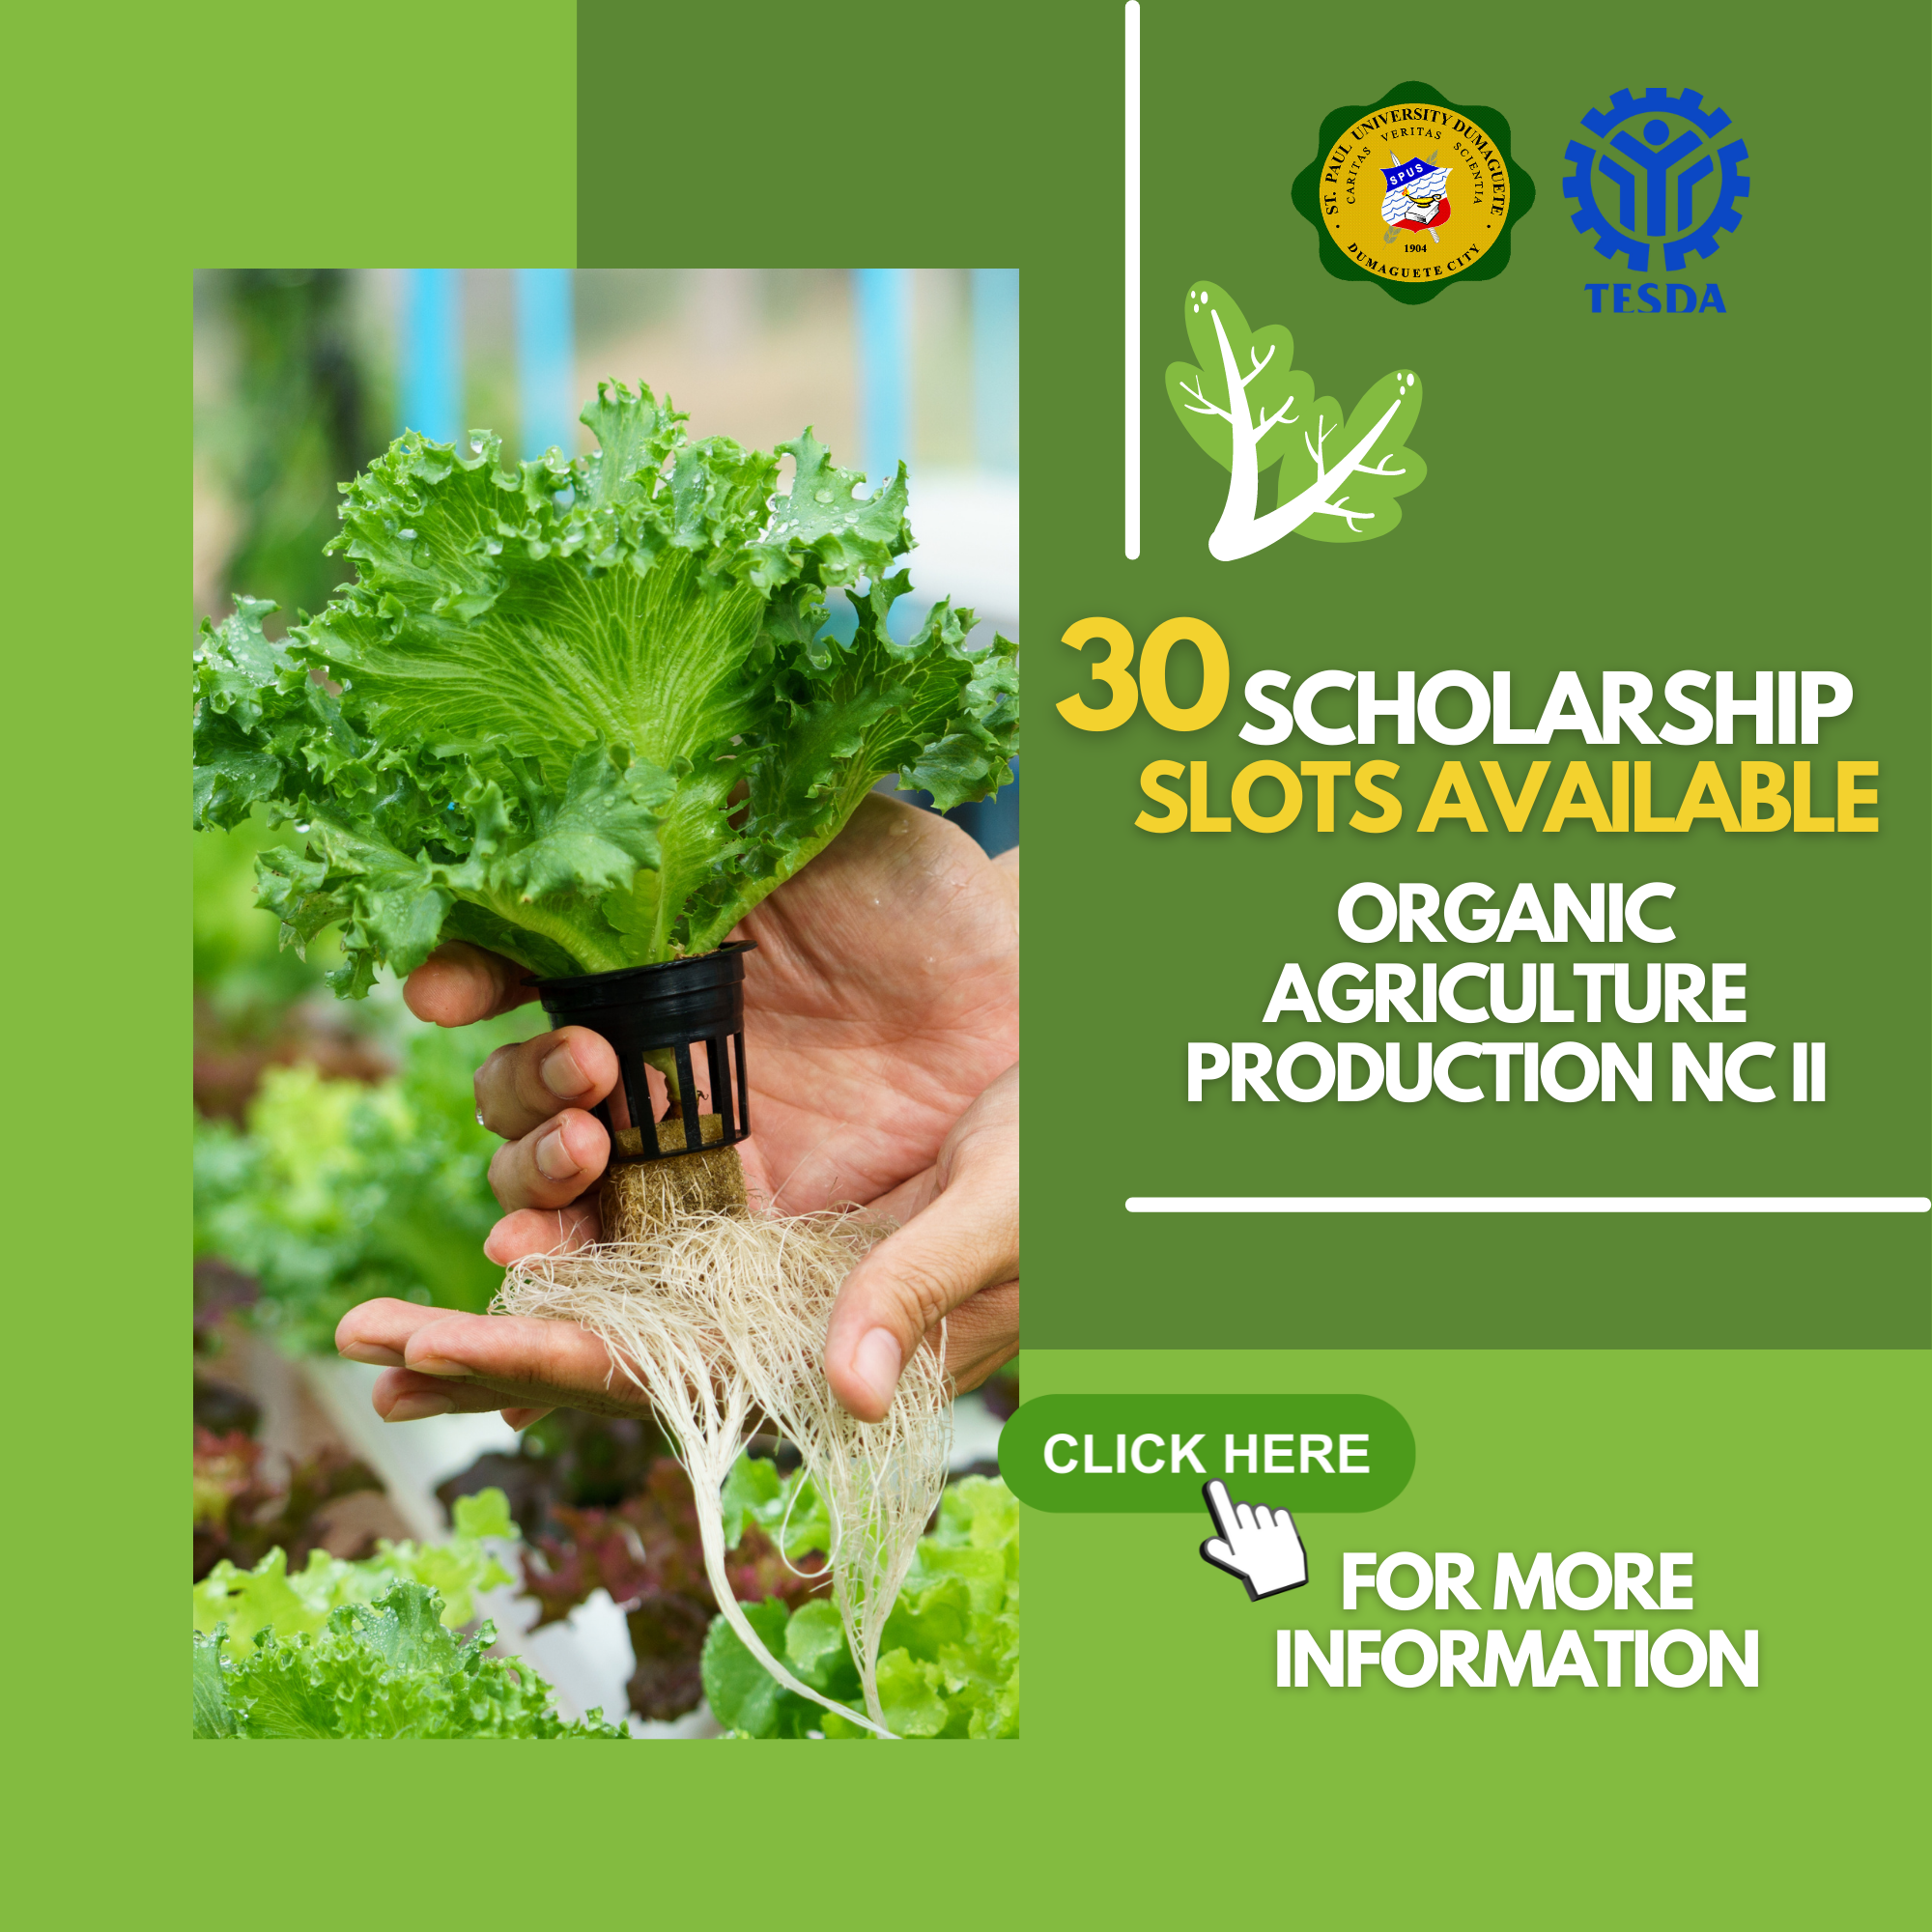 Be NCII ready with organic agriculture production